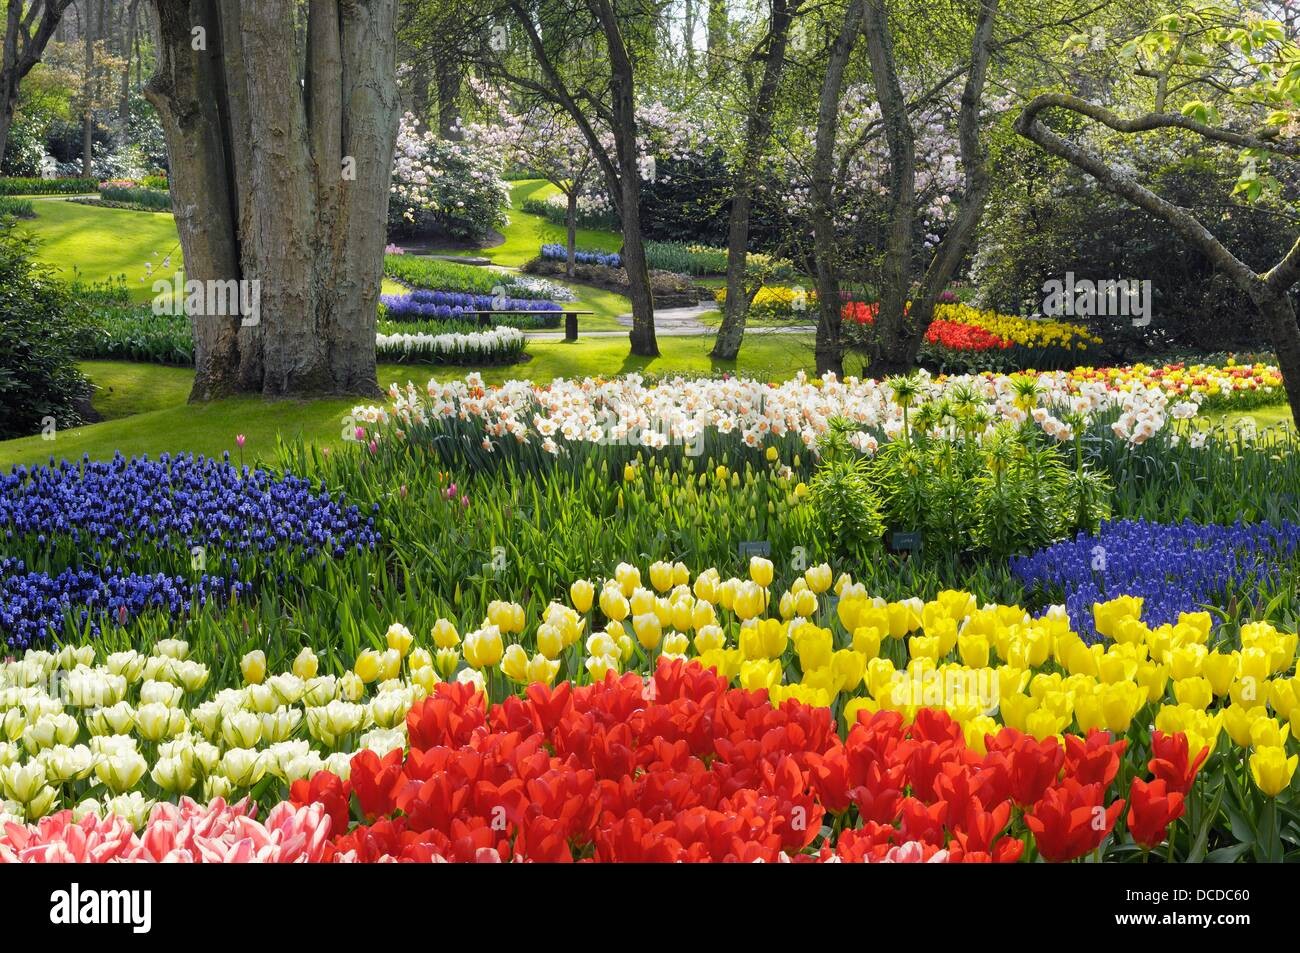 Formal Garden Design With Springtime Flowerbeds Of Tulips, Daffodils ...